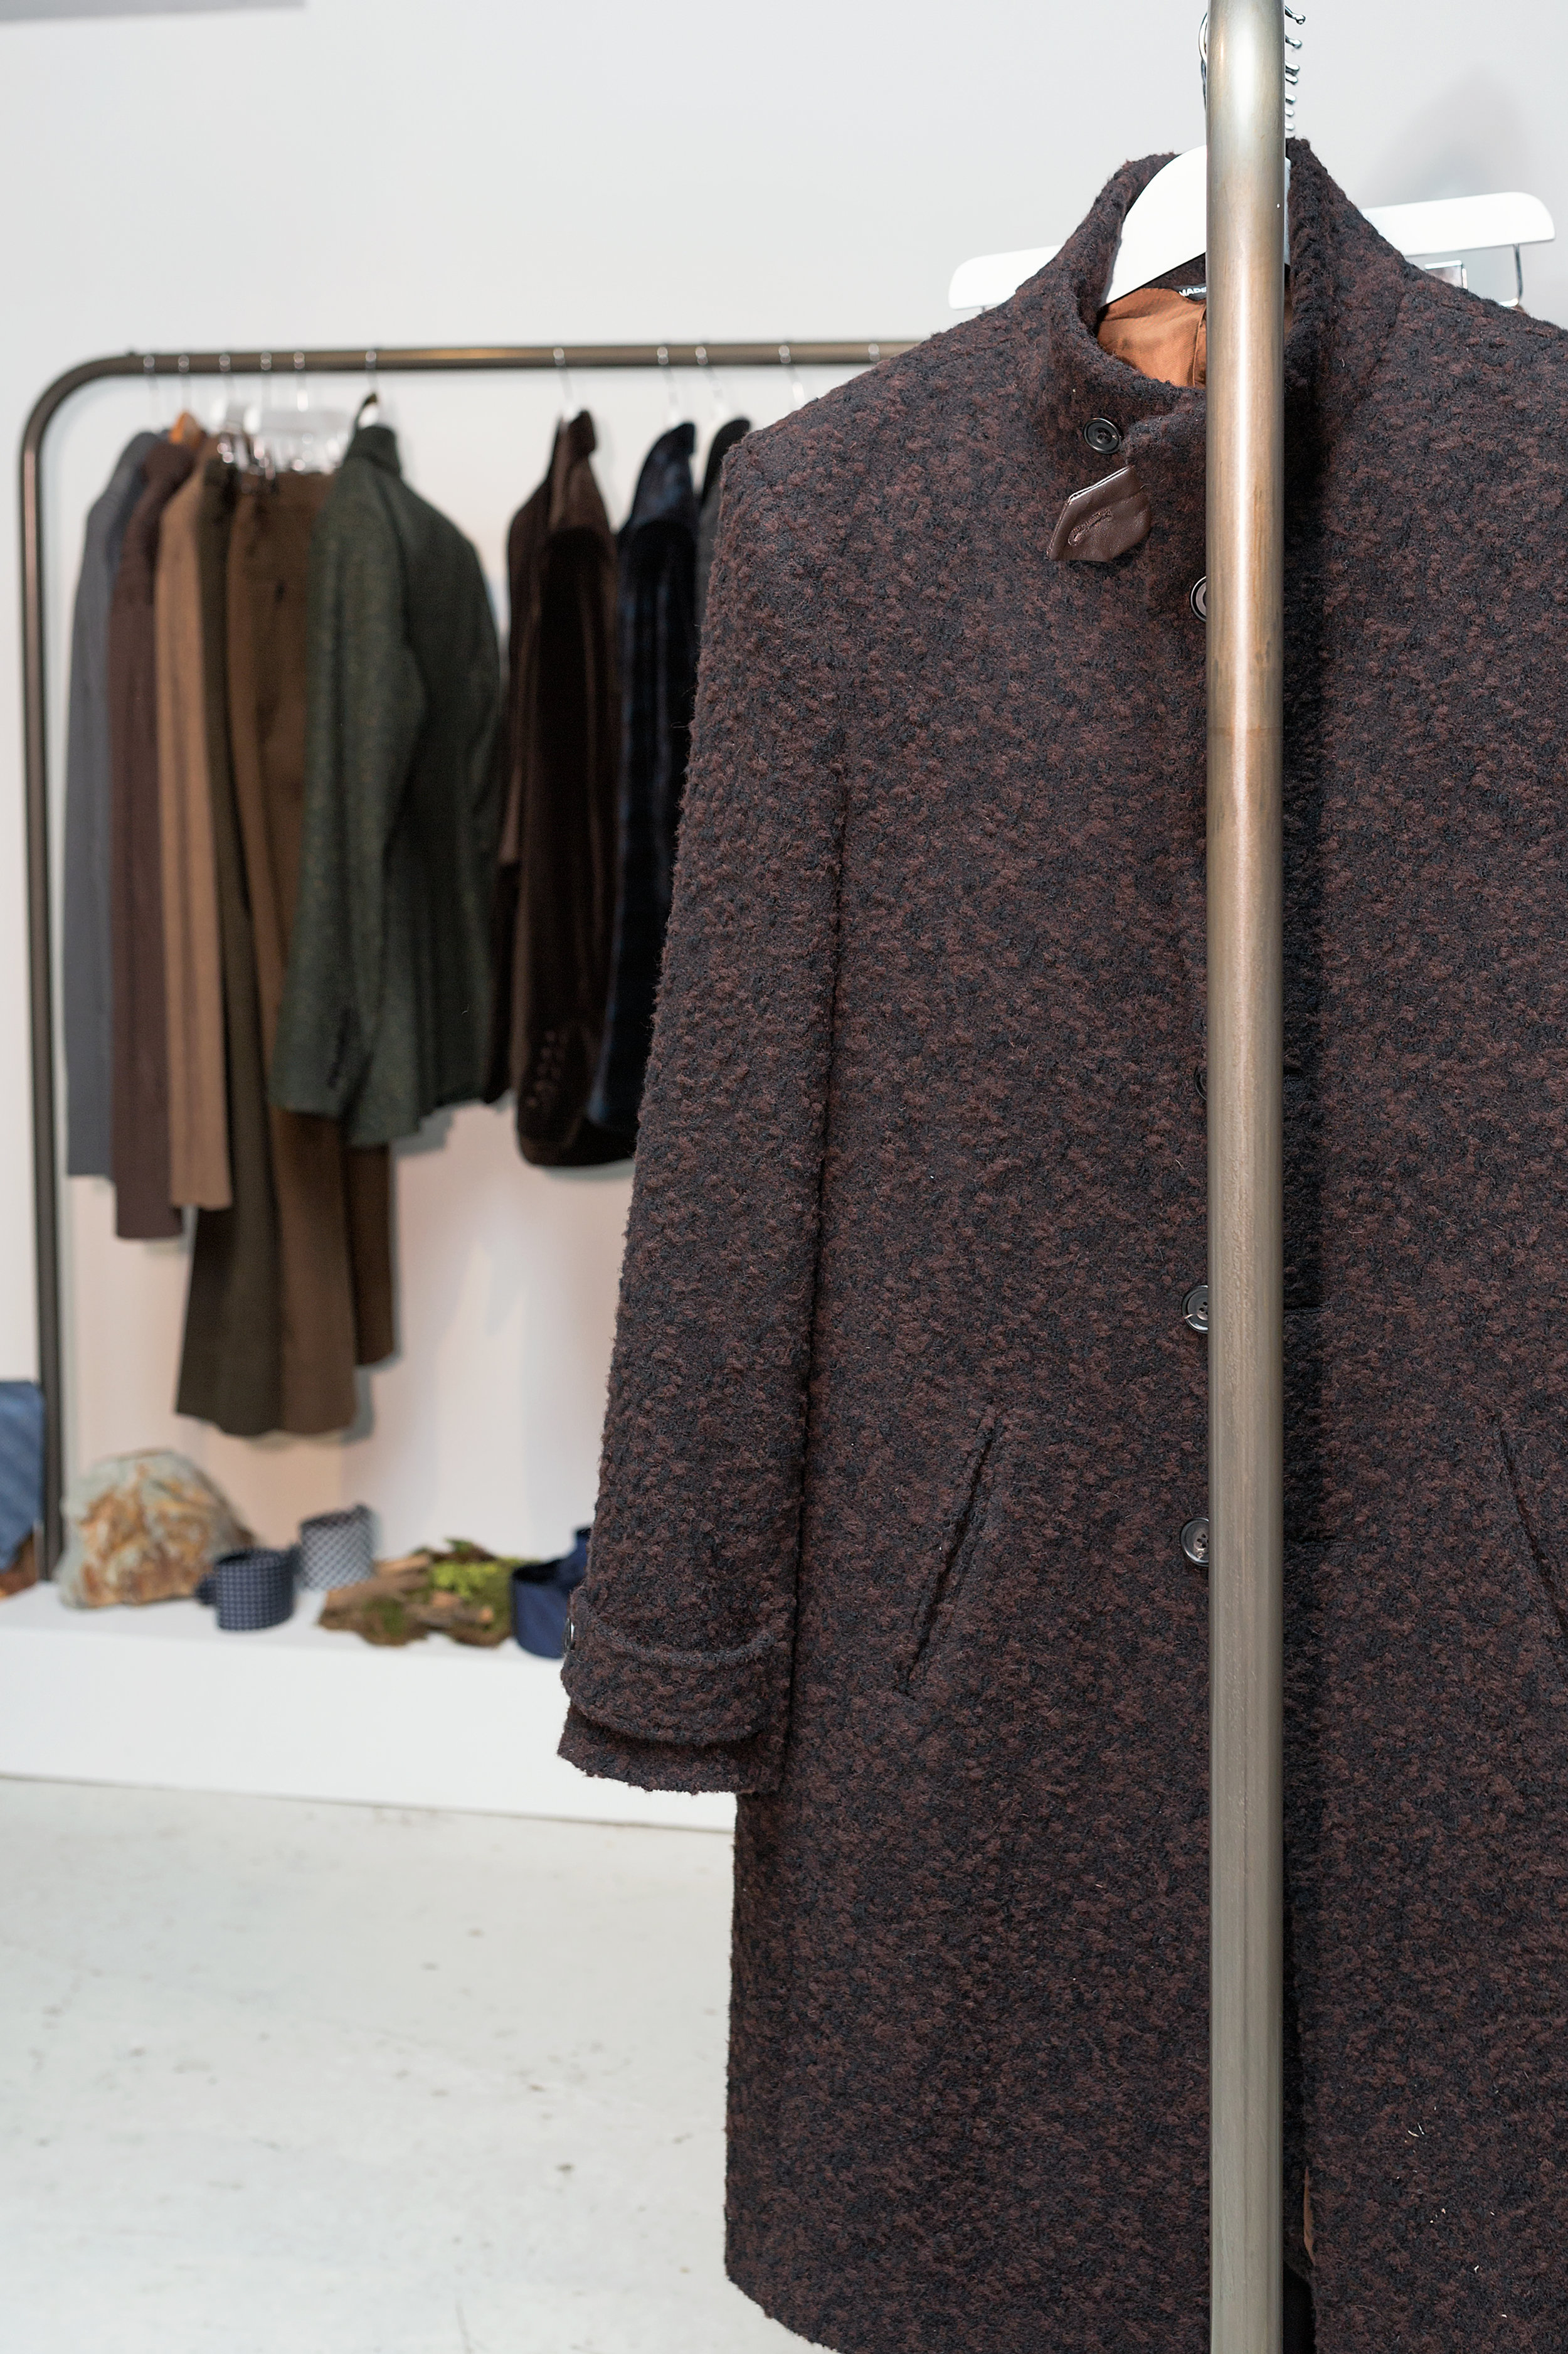 AW17 collection on show at London Fashion Week Mens Designer Showrooms -Jan 2017